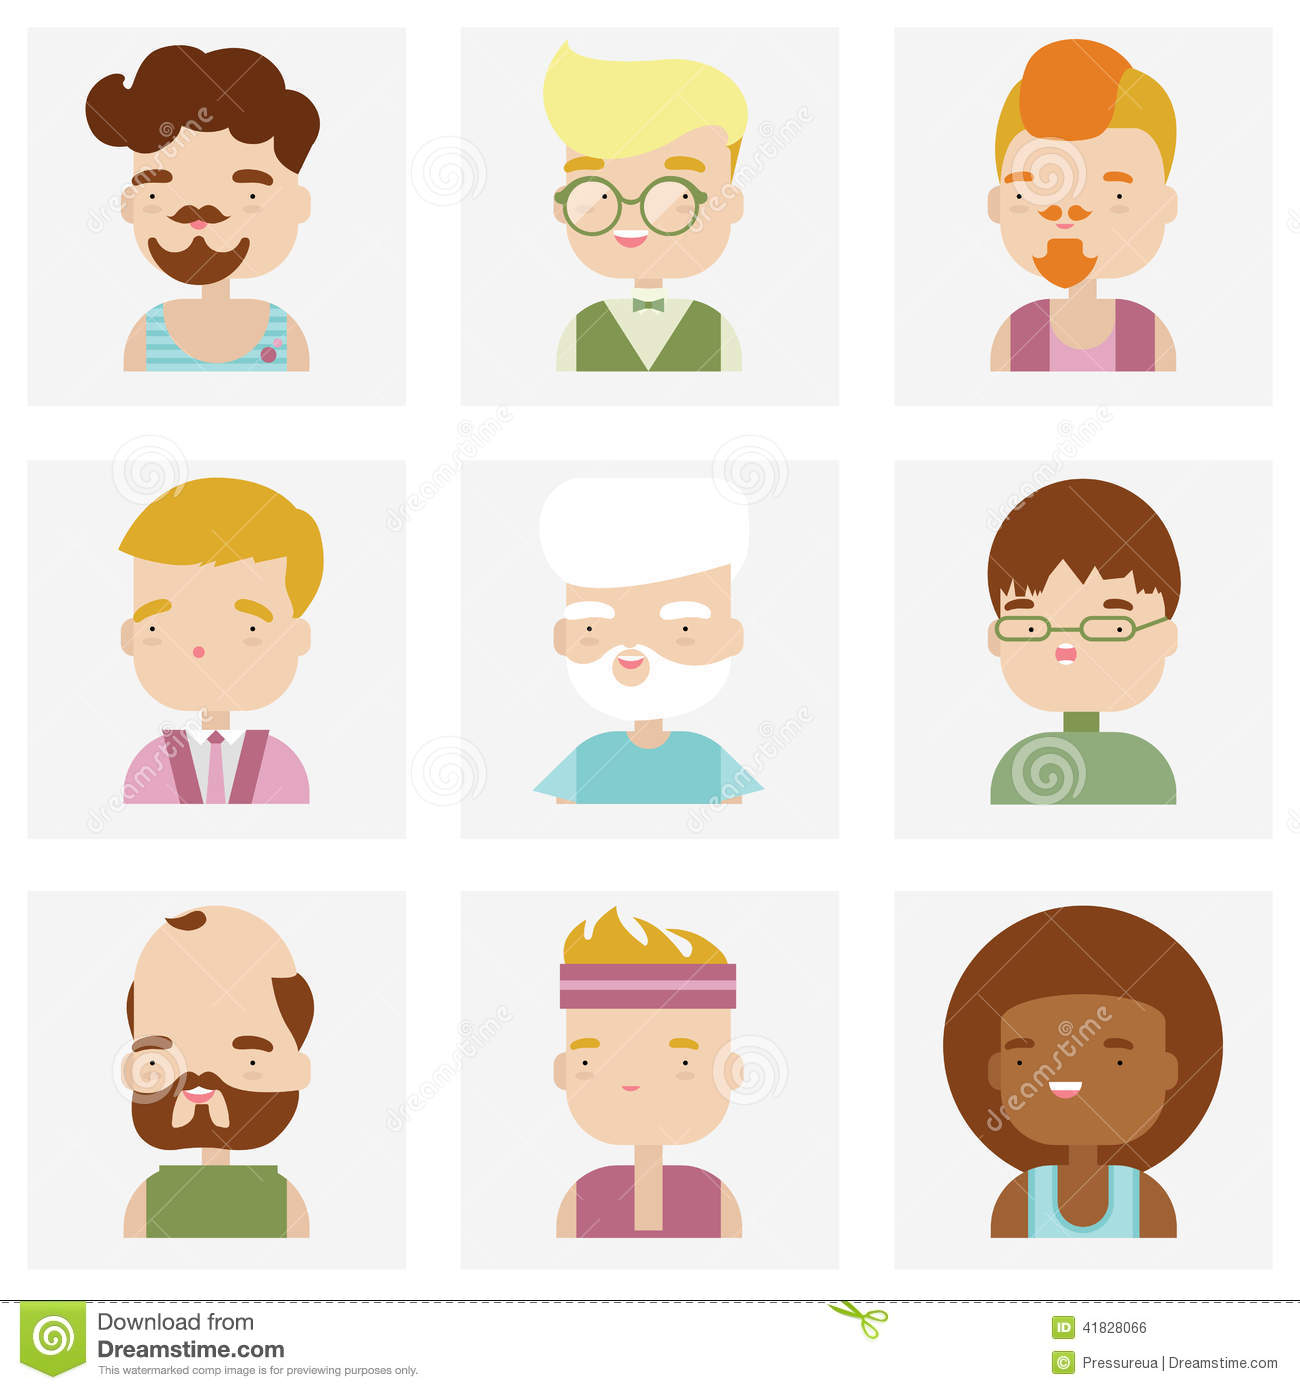 Cute Character Design Illustrator : Cute male character faces flat icons stock vector